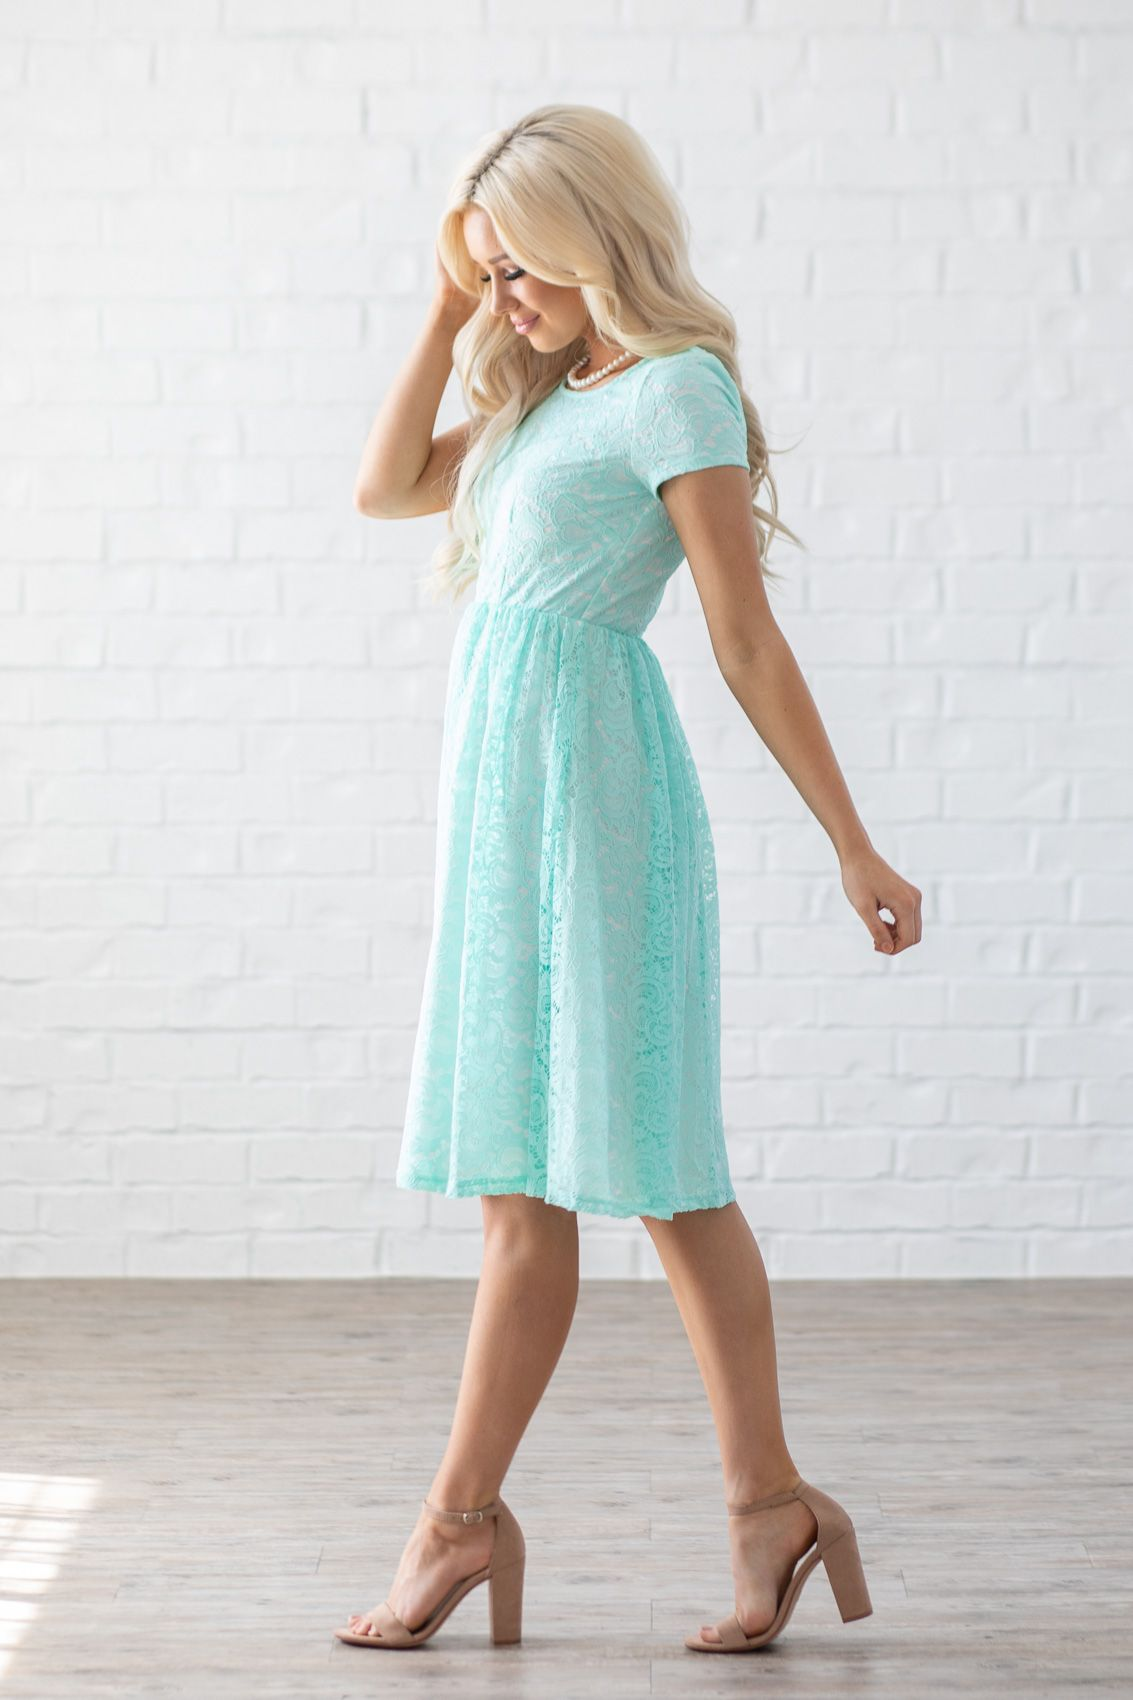 4a4ae17bcc4 Jenna Modest Lace Dress or Bridesmaid Dress in Mint w White Lining  64.99